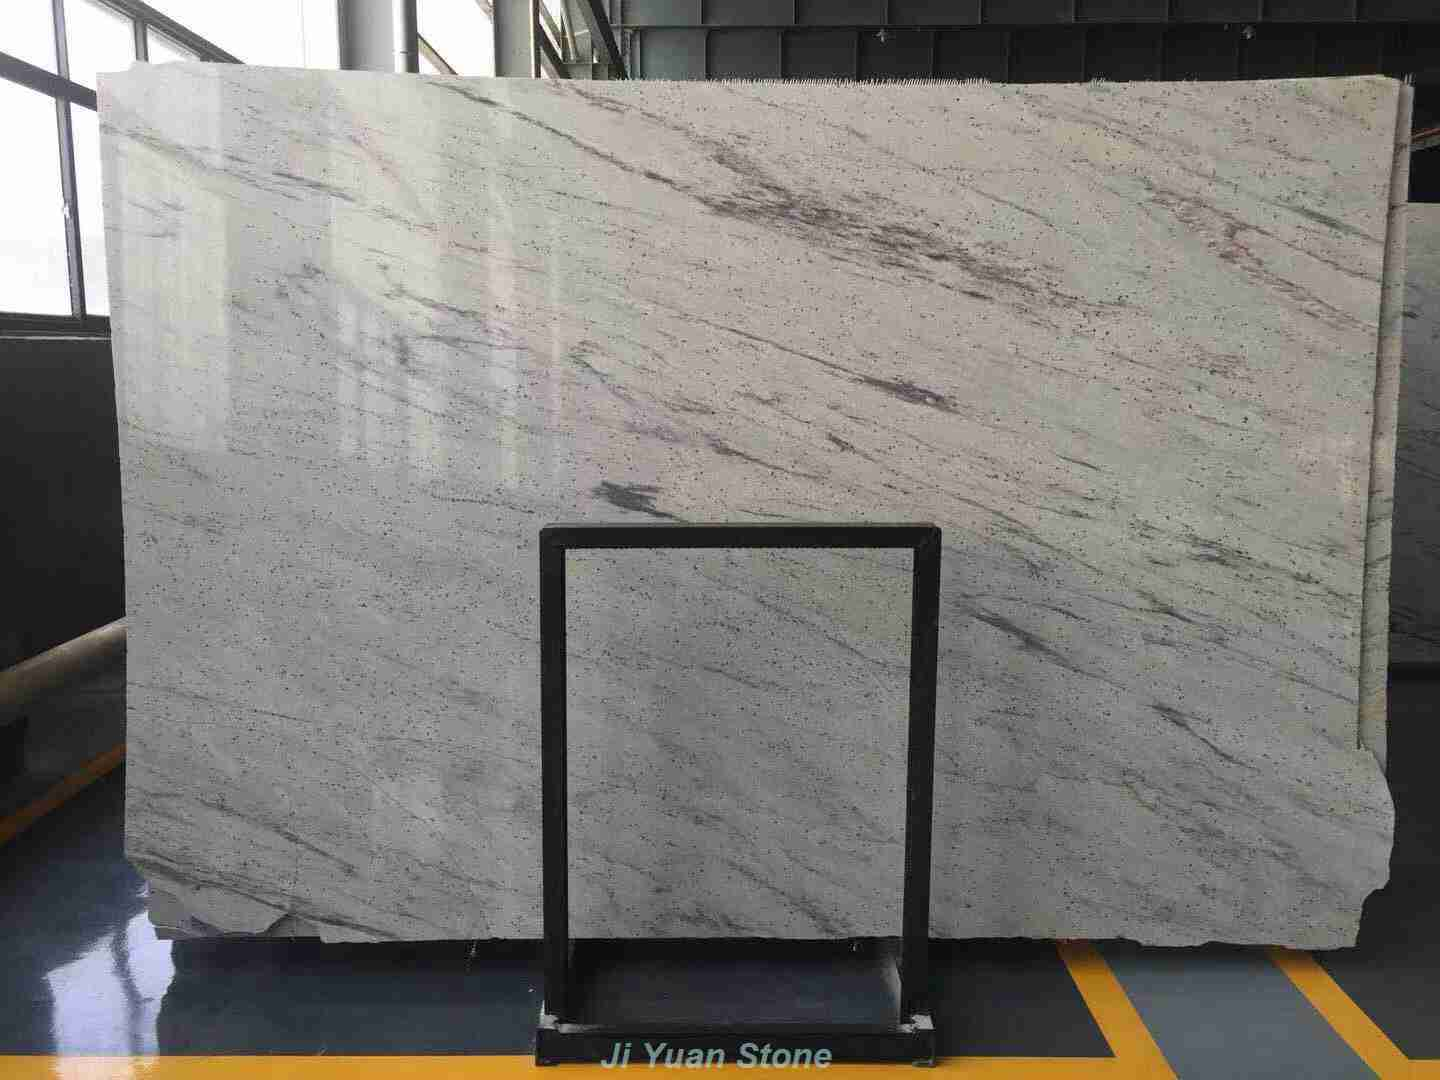 River white,white river granite cost,river white granite tile,river granite countertops,river white granite price per square foot,river white granite worktops,new river white granite countertops